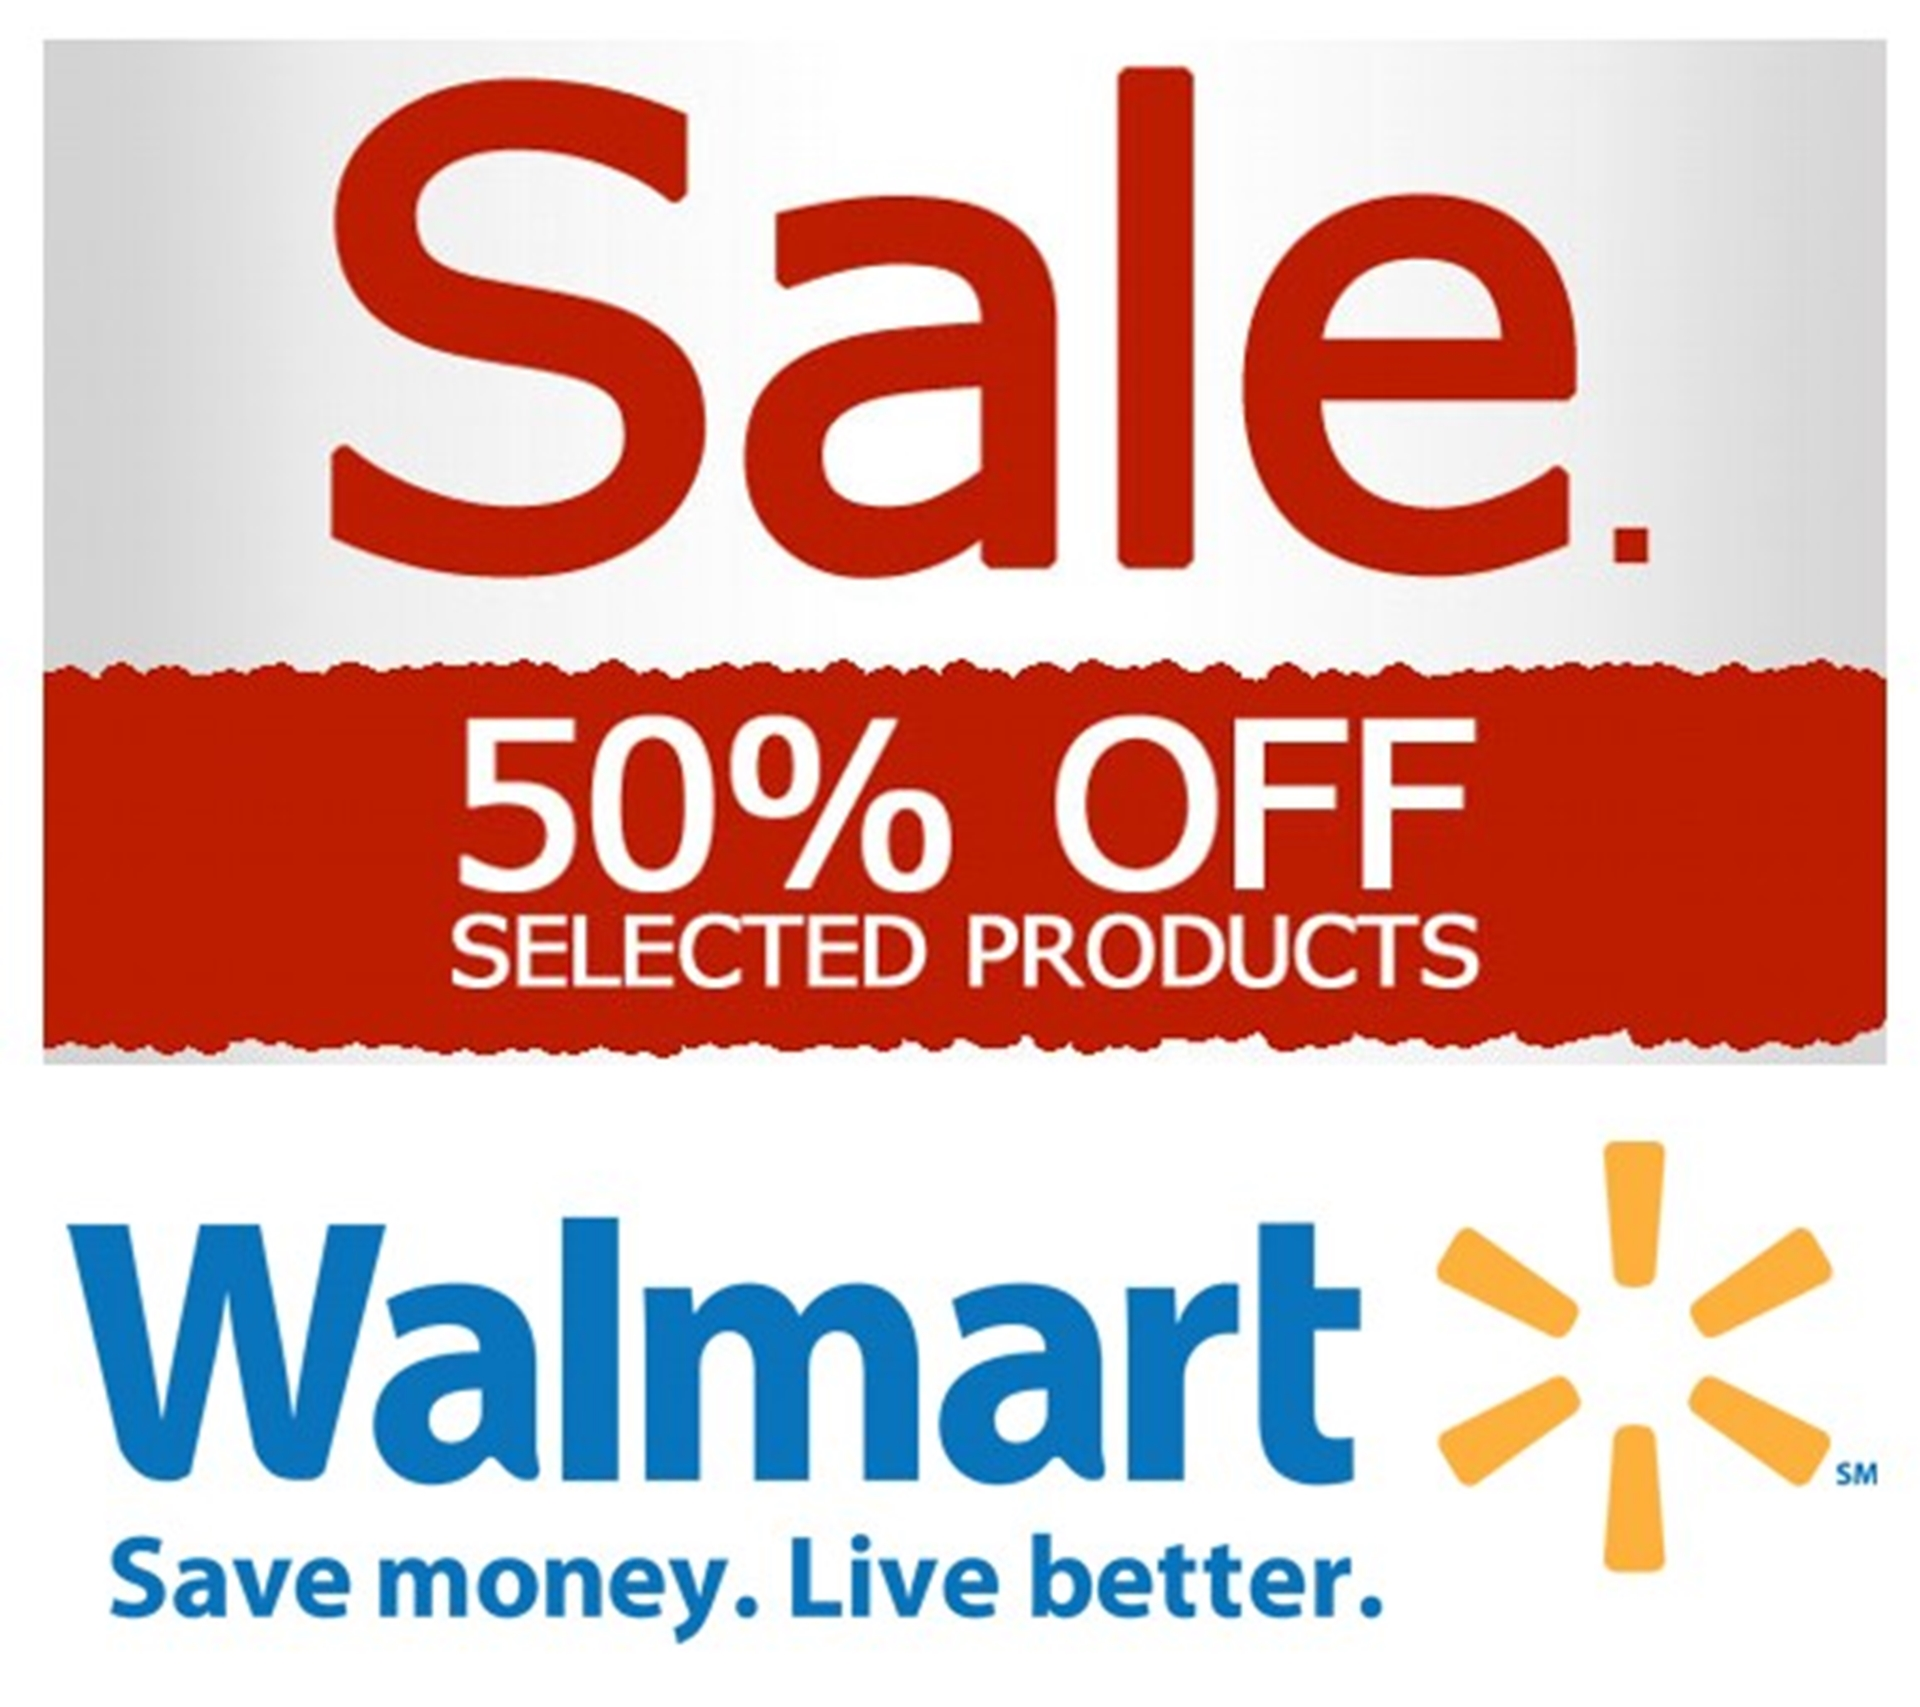 Walmart: The day after Christmas Sales